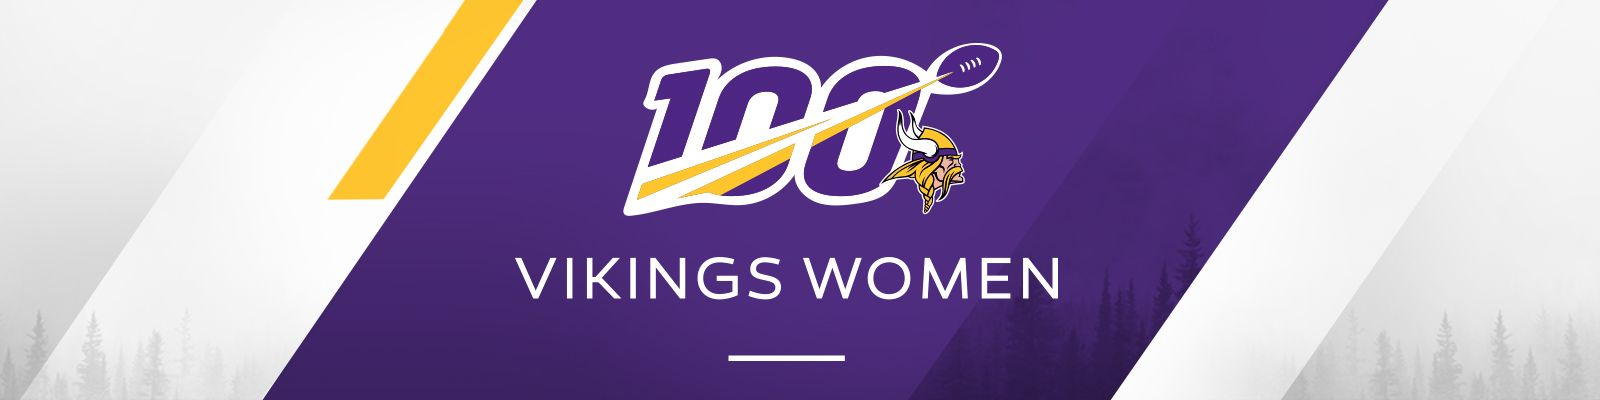 Vikings-Women-NFL-100-header